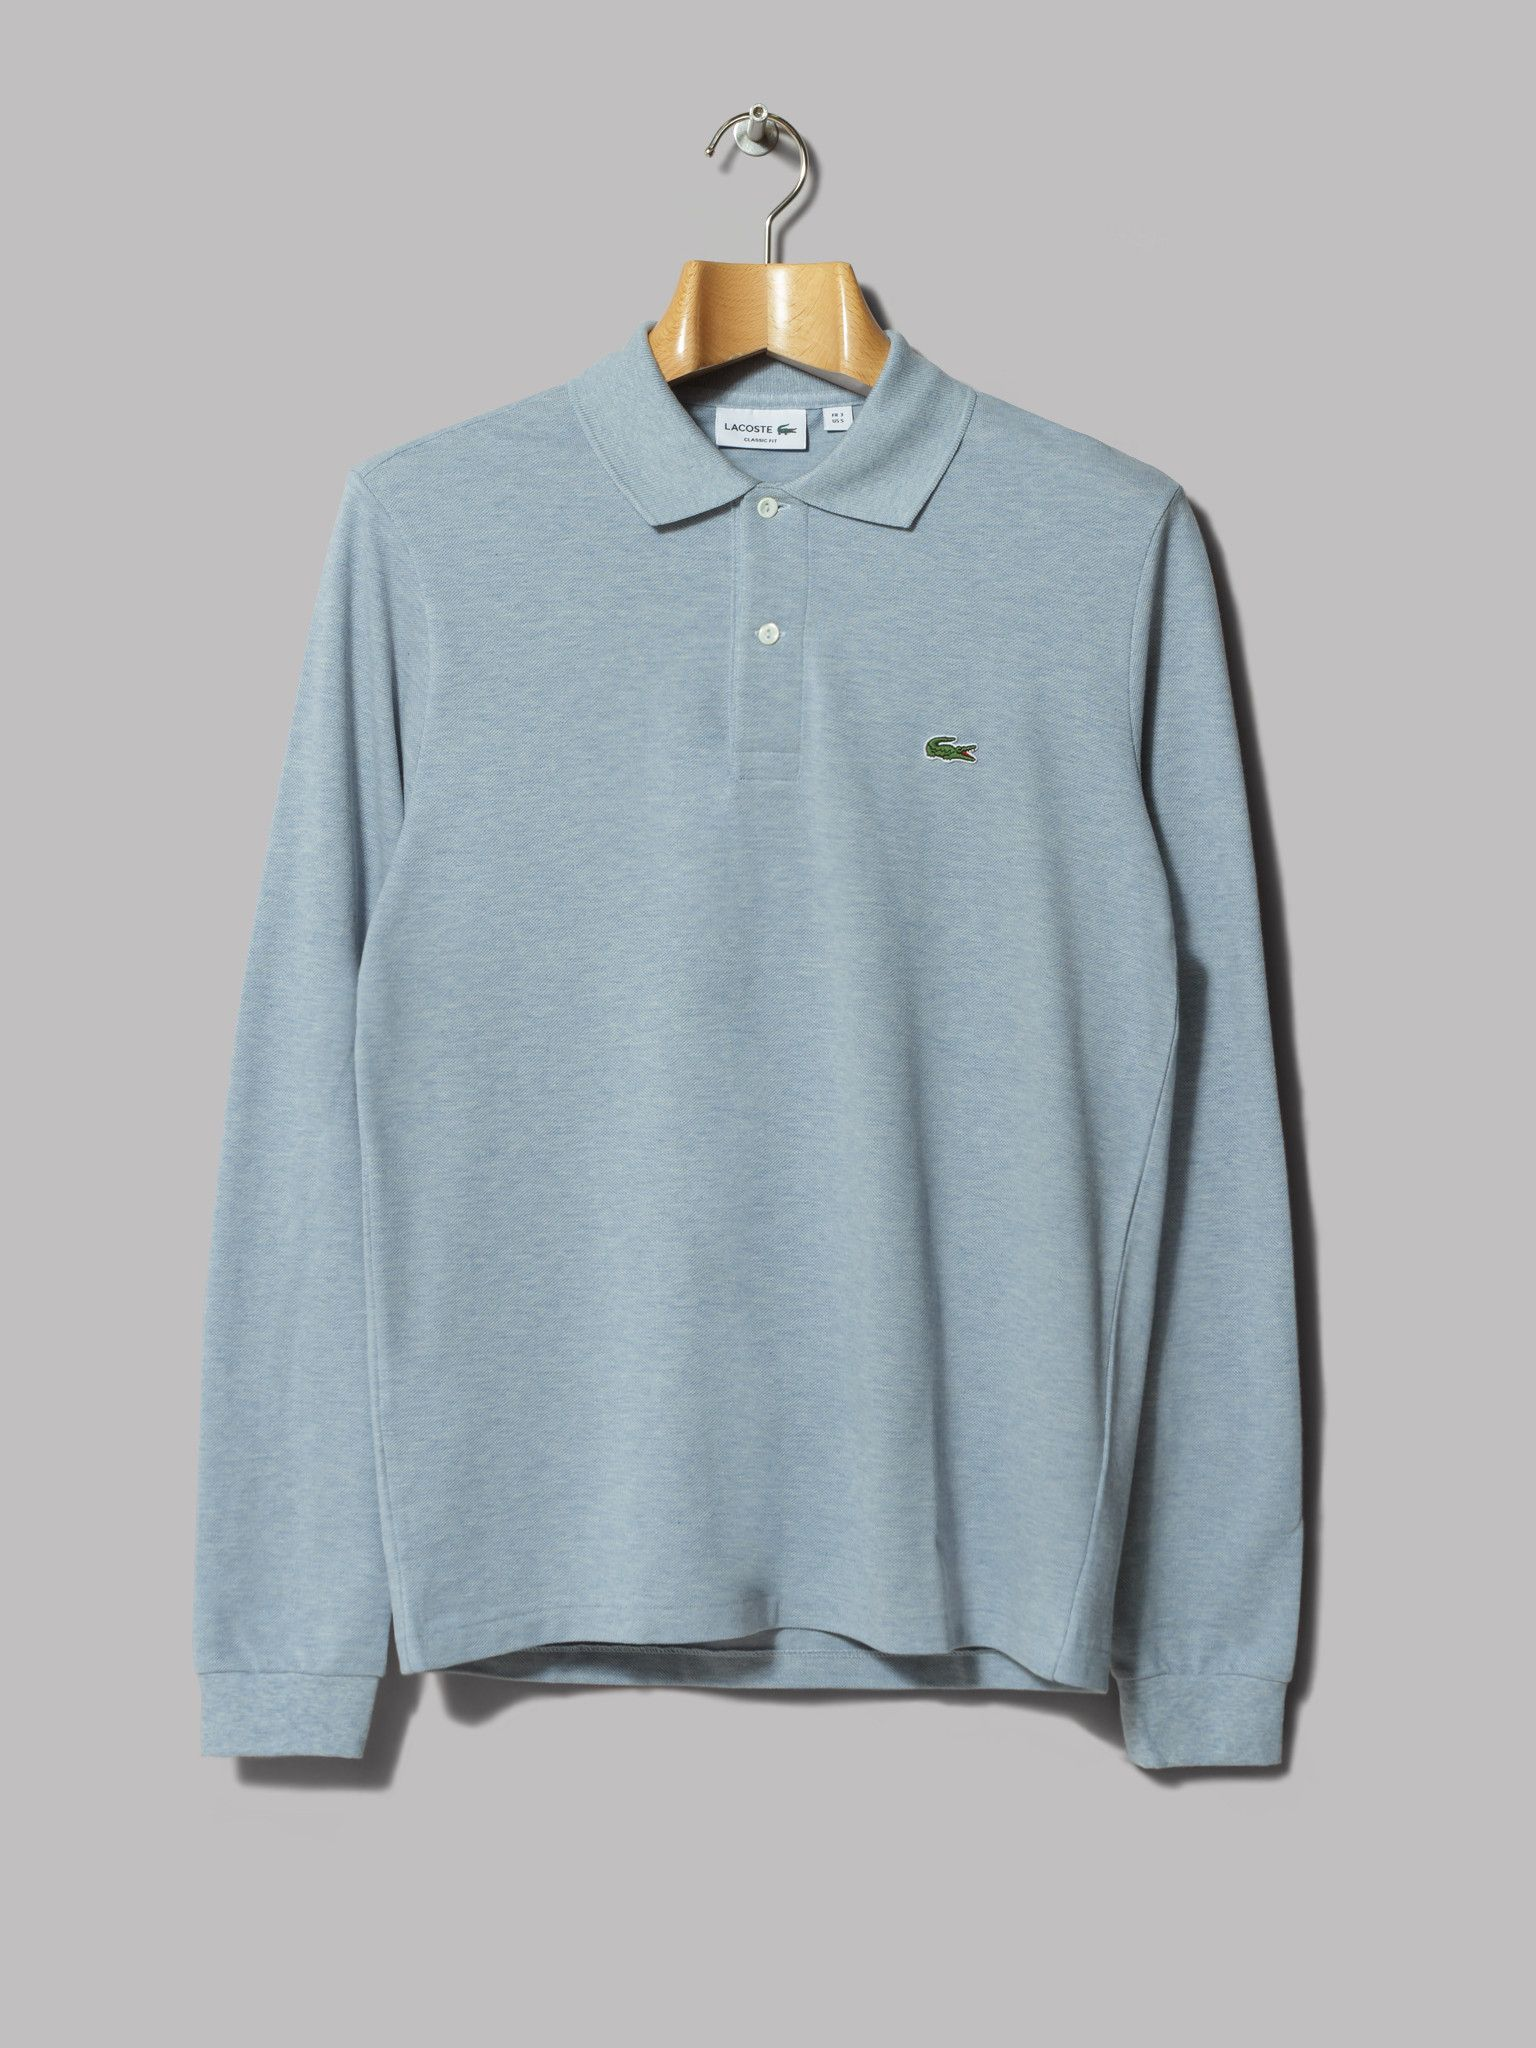 cd0190f7f0839c Lacoste Long Sleeve Marl Pique Polo (Celestial Chine)